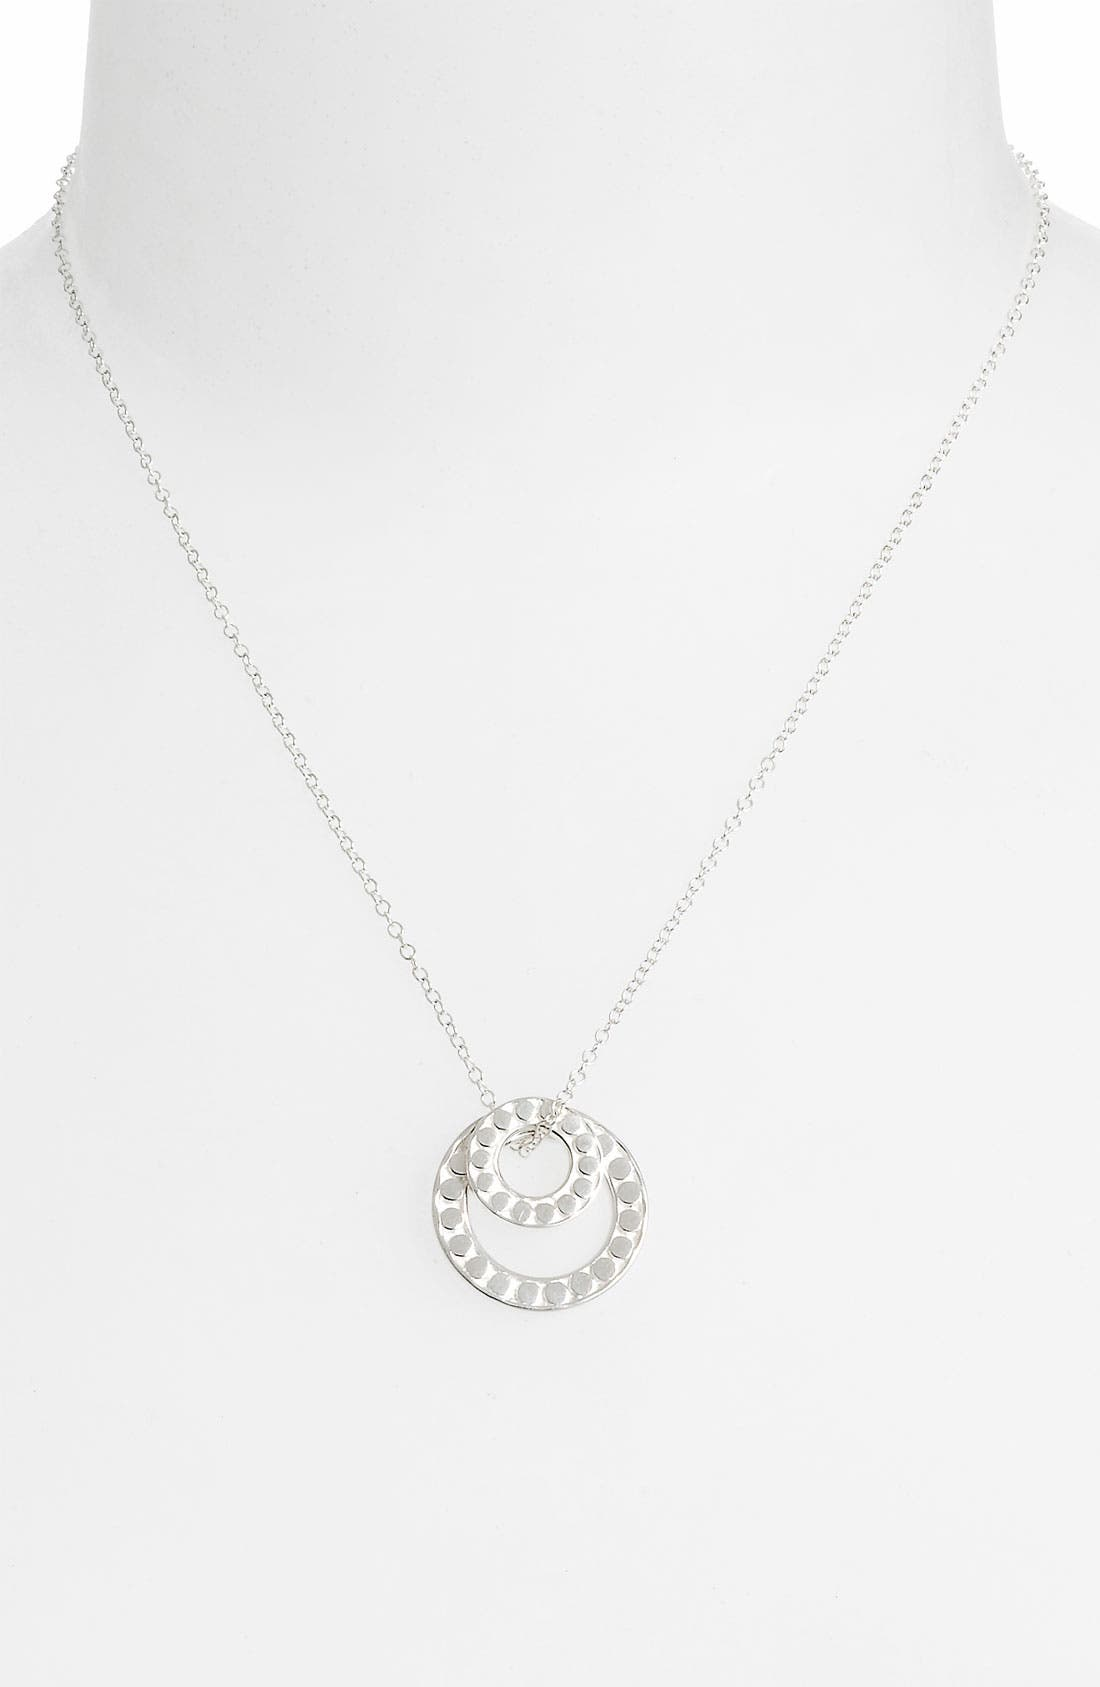 Alternate Image 1 Selected - Anna Beck 'Floating O' Double Circle Necklace (Online Only)